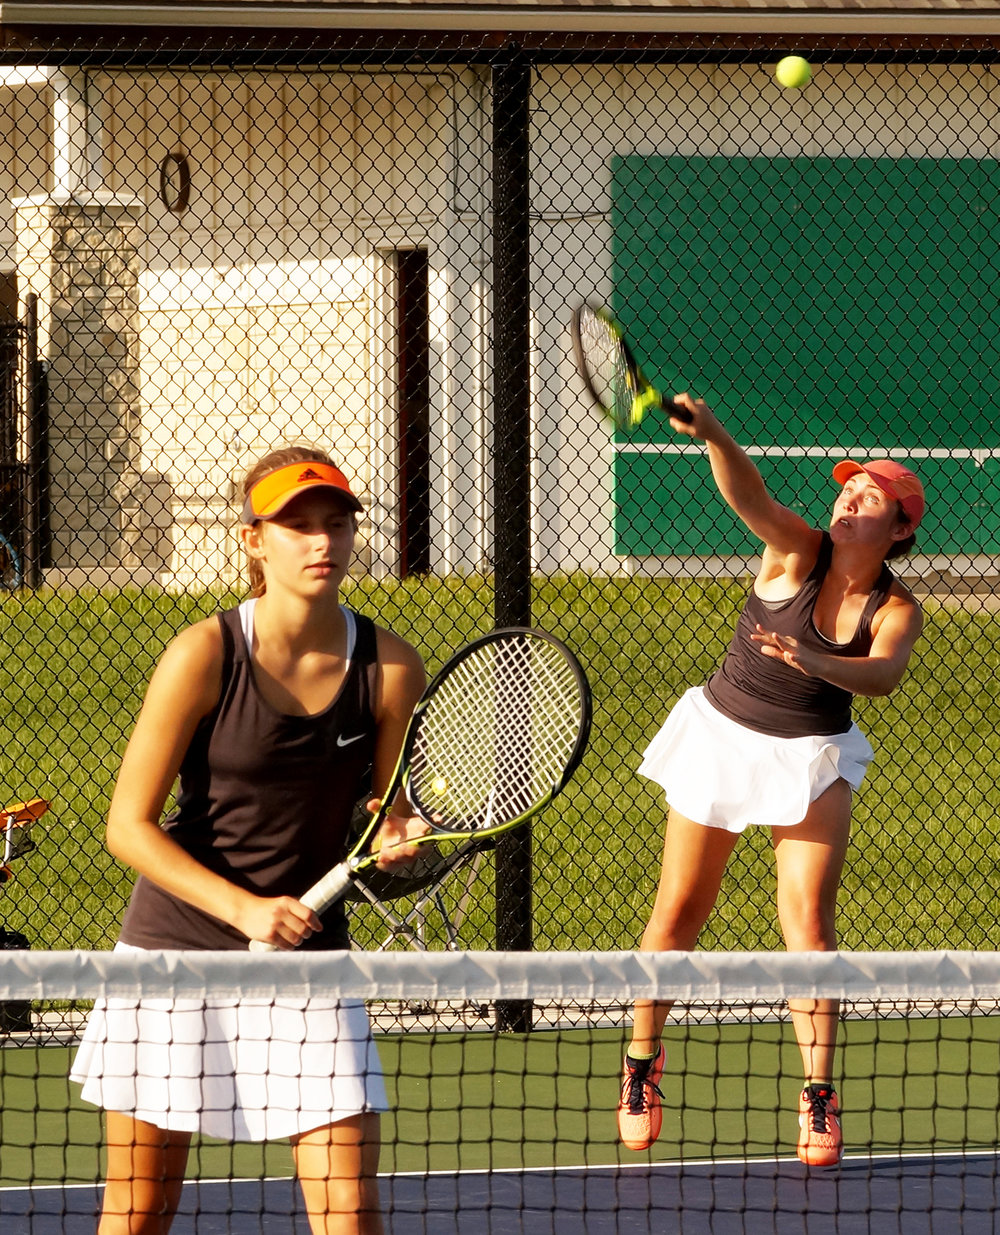 CHRIS PATTERSON/Citizen photo Platte County's Madalyn Ivy, right, hits a serve while doubles partner Hannah Valentine waits at the net against Liberty North on Monday, Aug. 29 in Liberty, Mo.